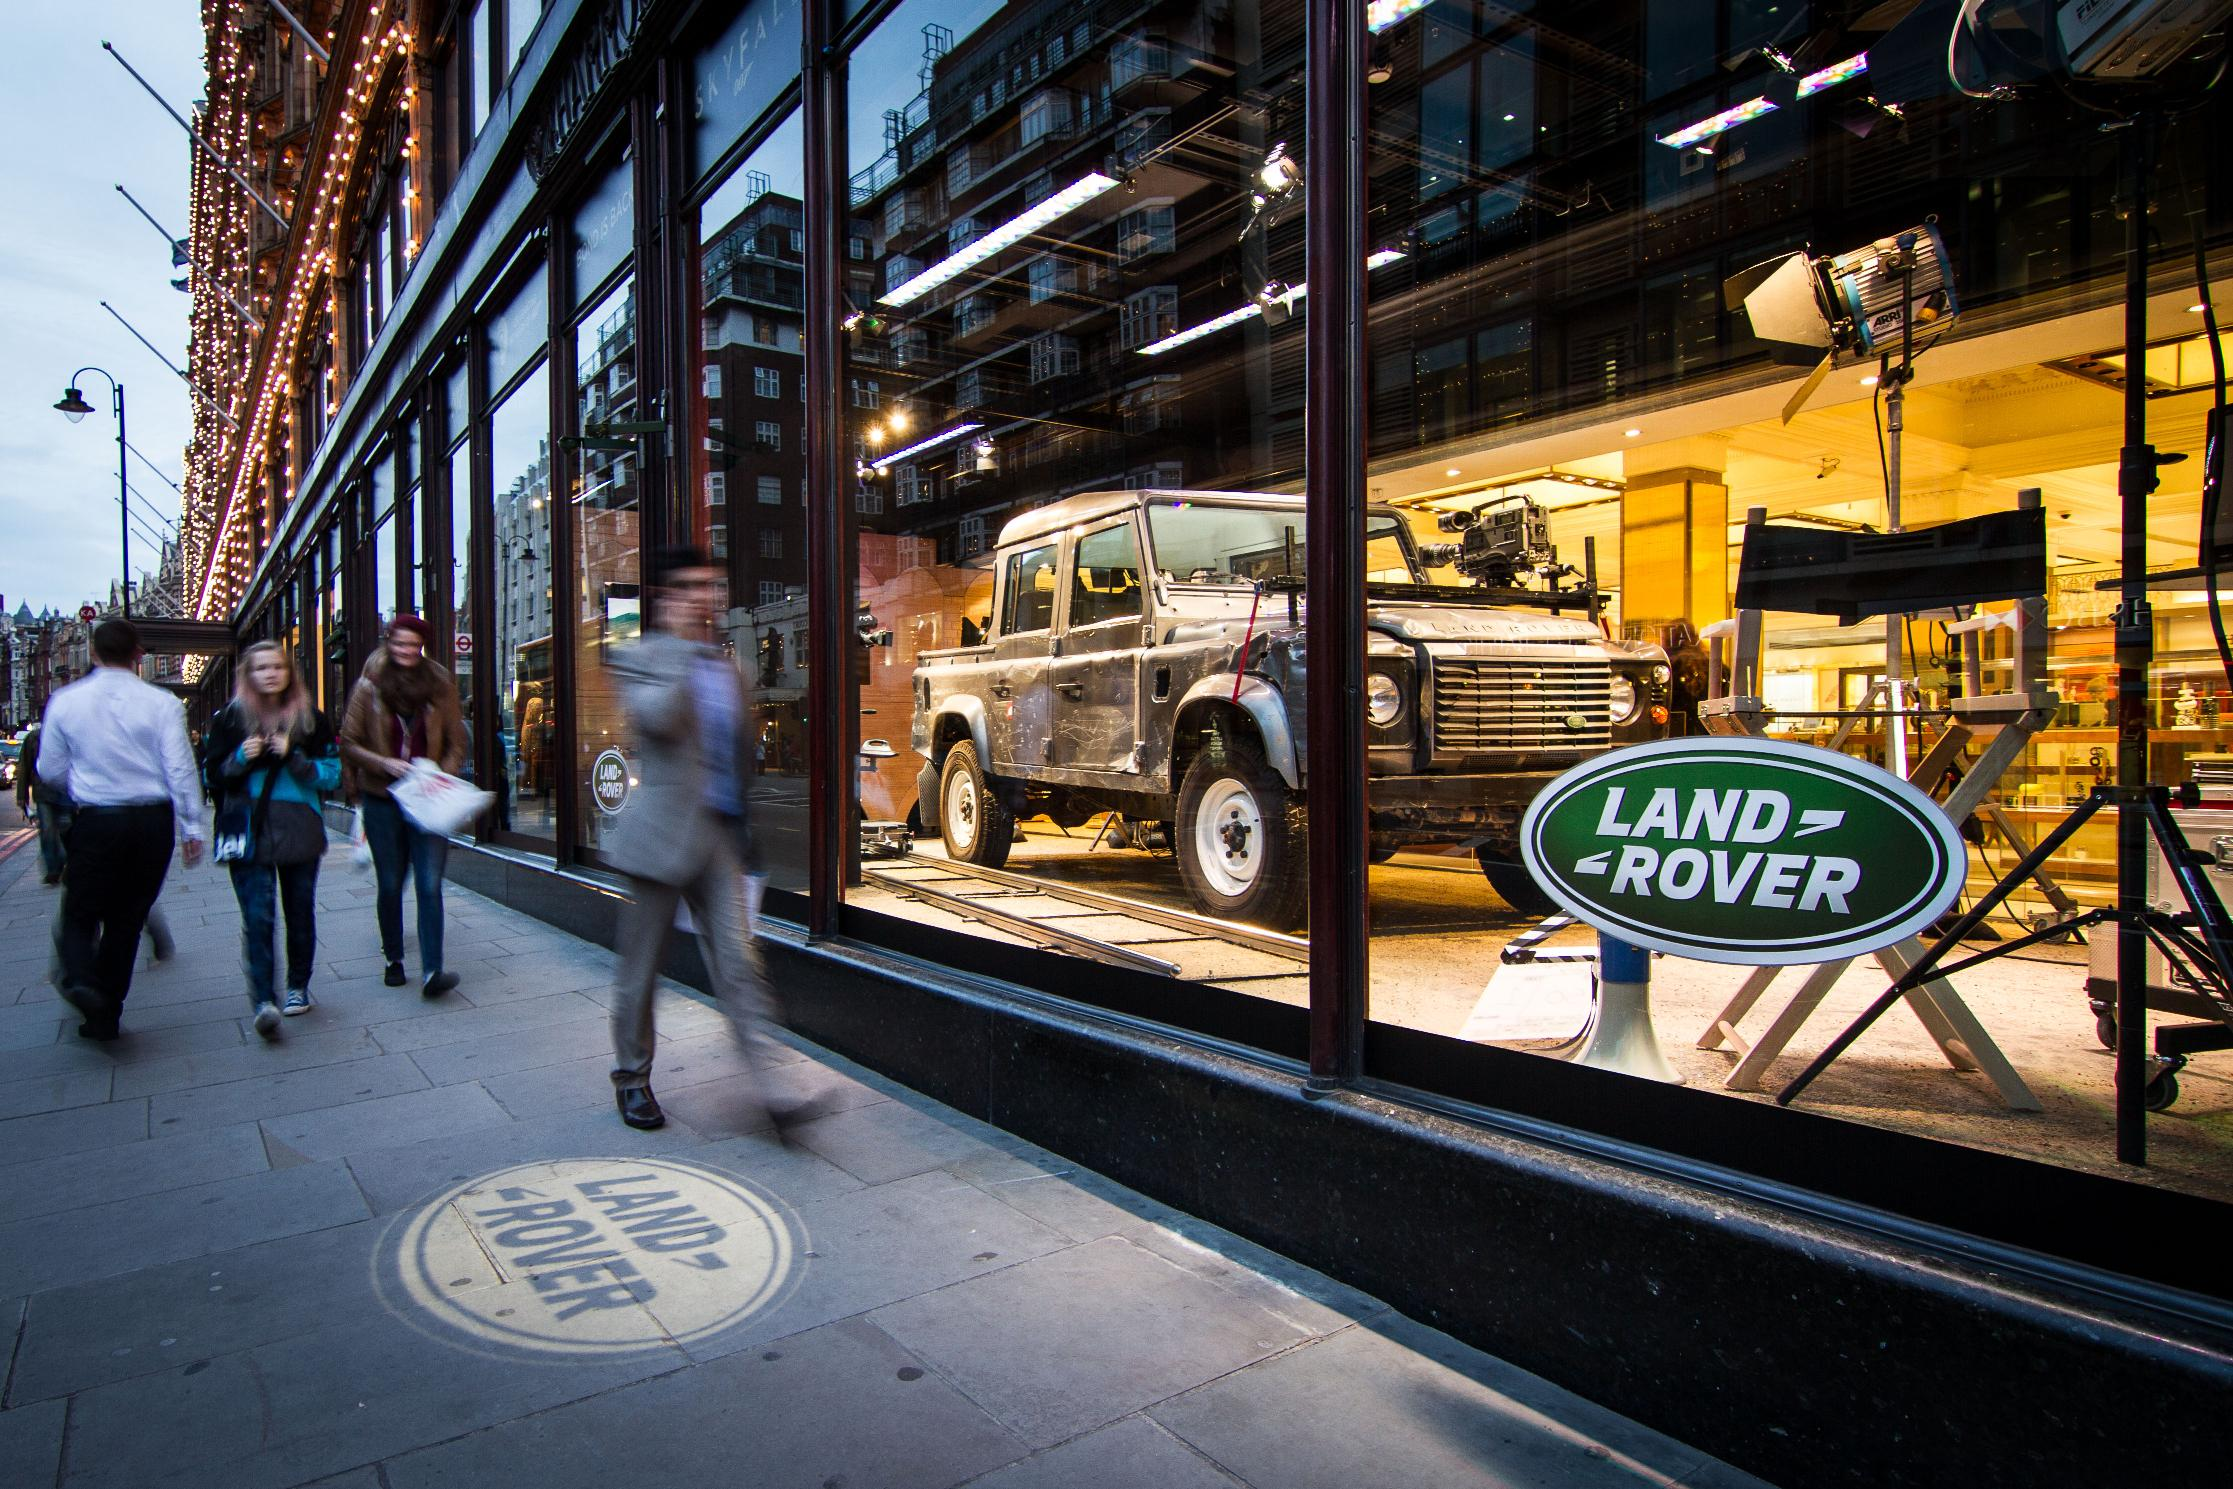 SKYFALL Land Rover in Harrods Window Debut | The Land Rover Center